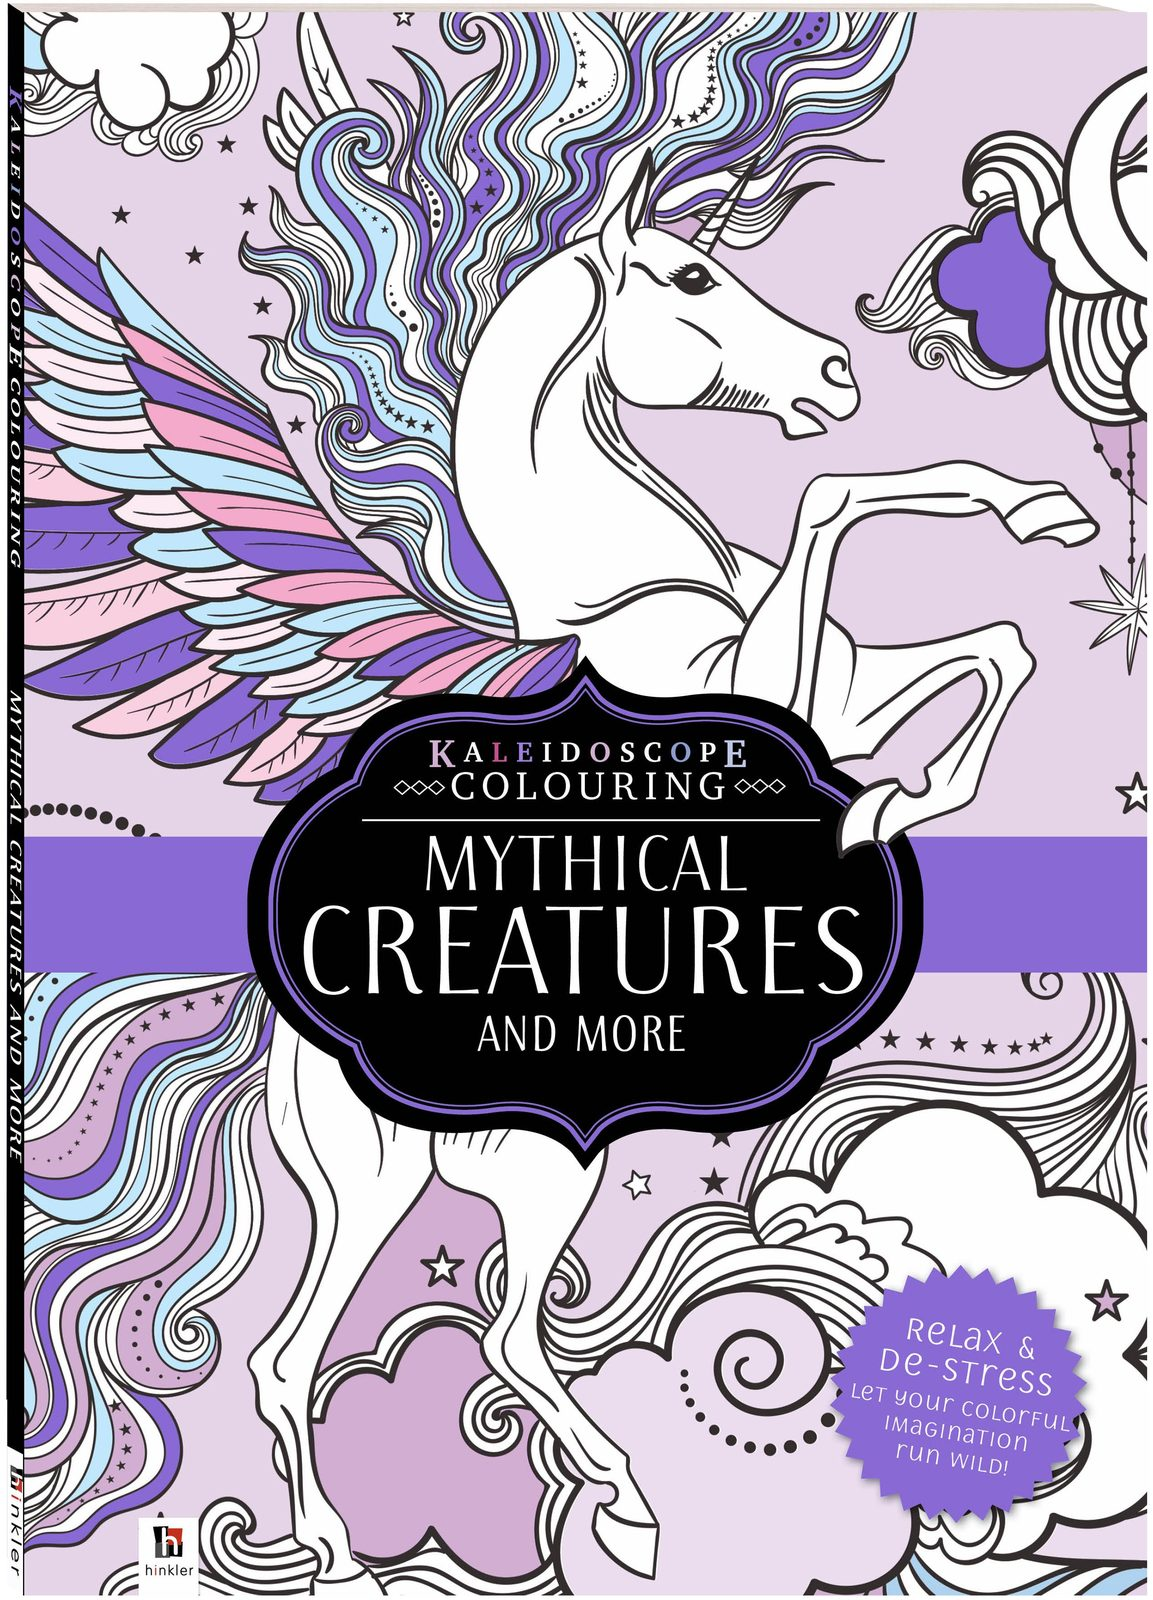 Kaleidoscope: Colouring Book - Mythical Creatures and More image